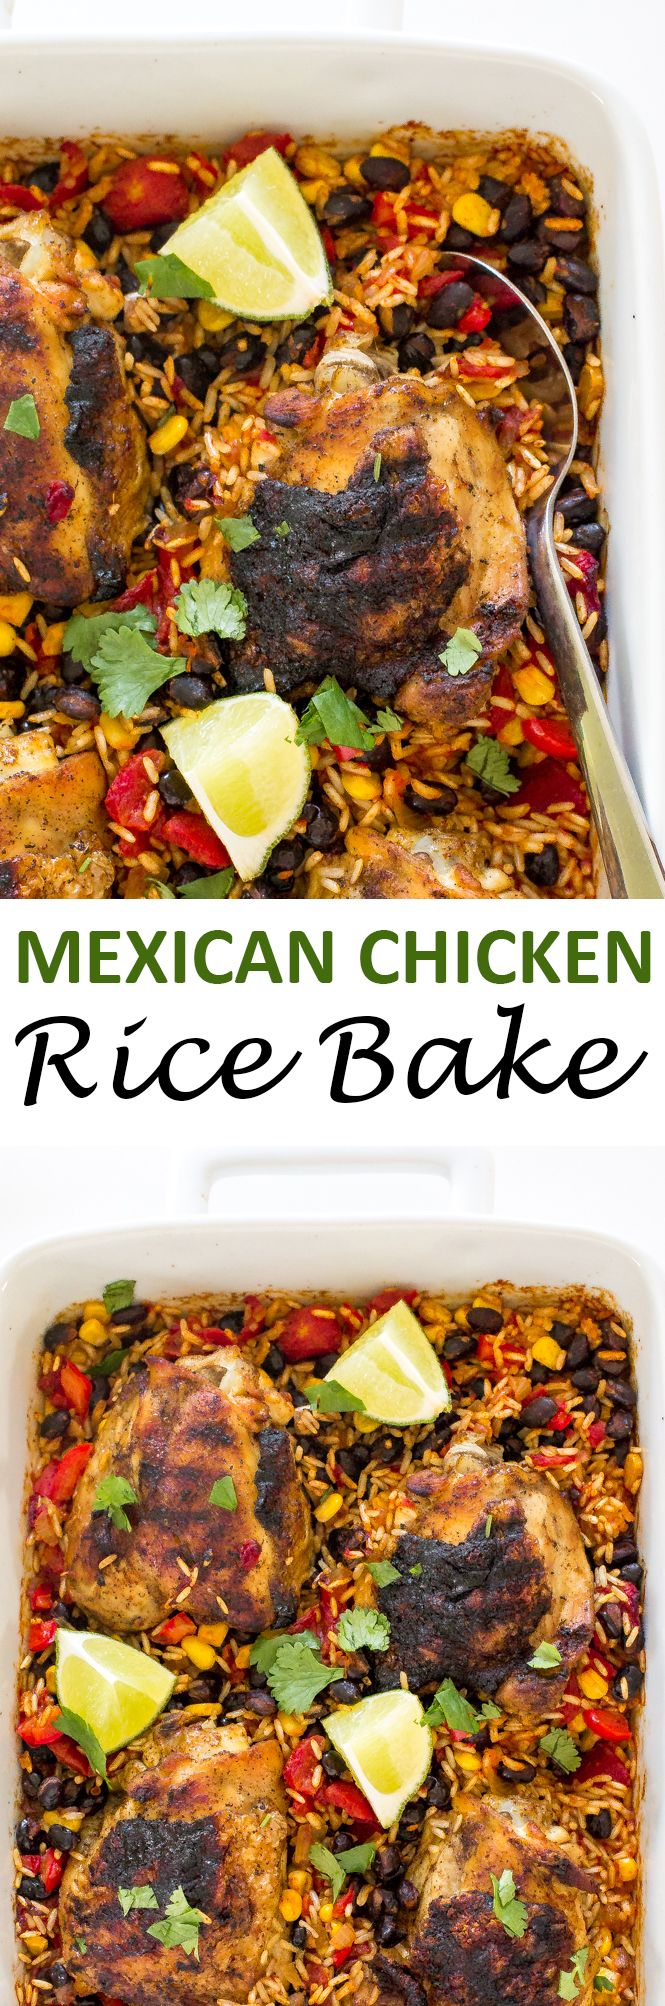 Mexican Chicken Rice Bake. Blackened chicken thighs served on a bed of Mexican rice, black beans and corn. A super easy dinner! | chefsavvy.com #recipe #Mexican #chicken #rice #bake #dinner